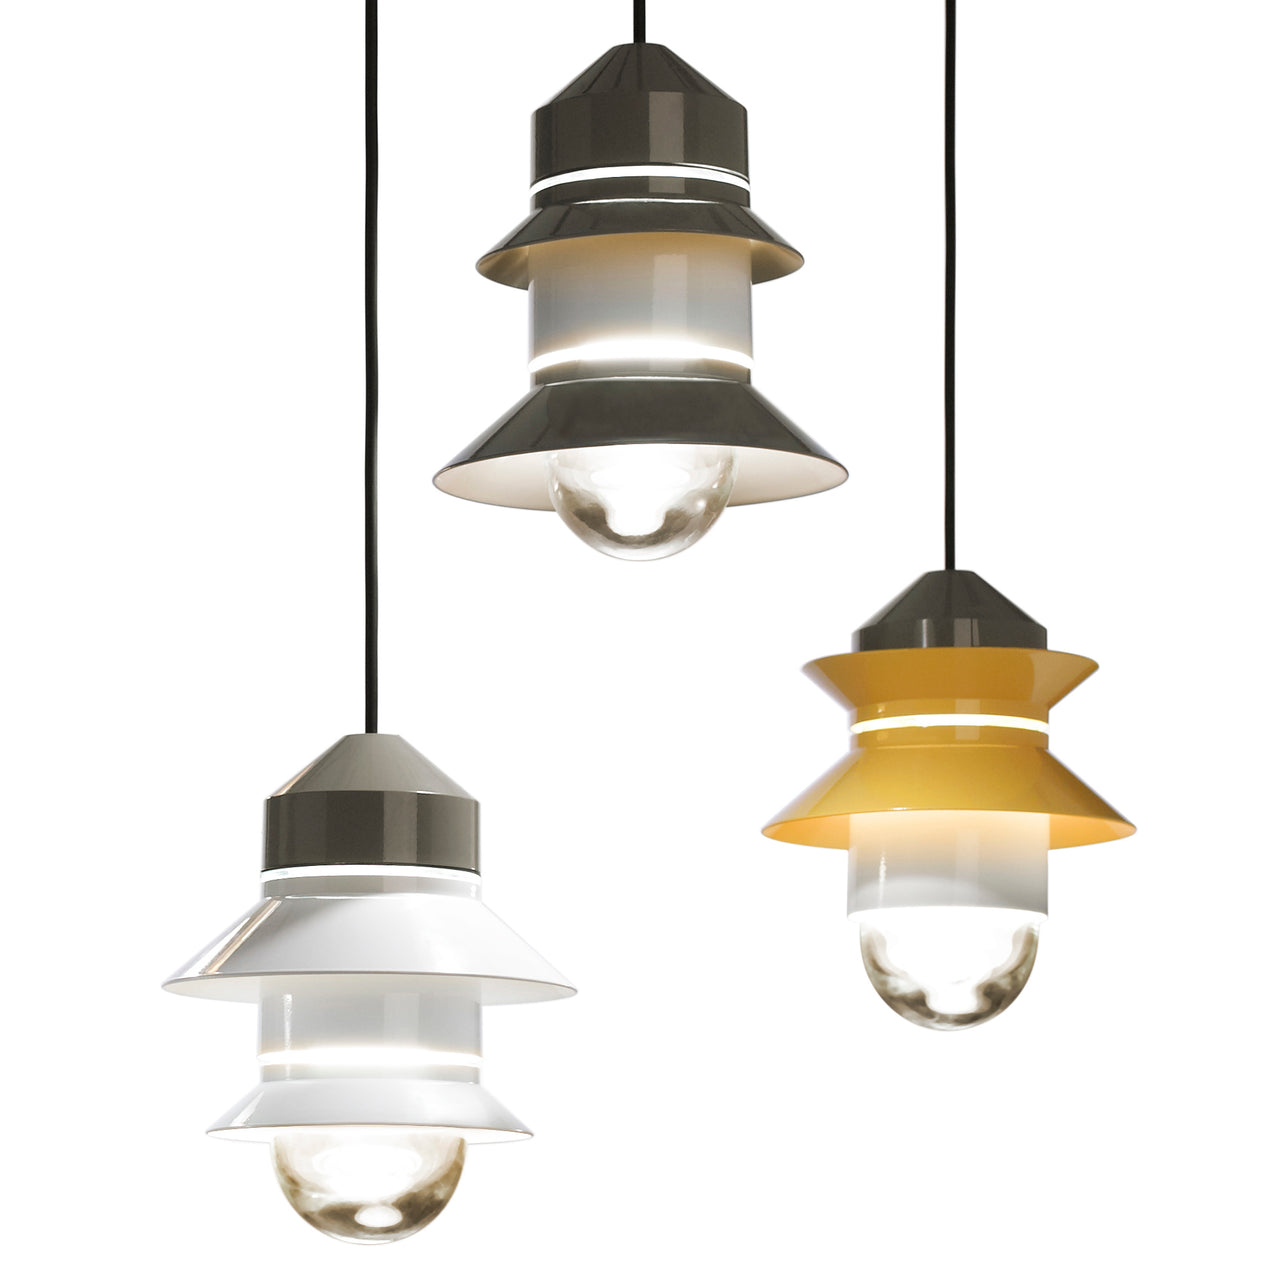 Santorini Pendant Light